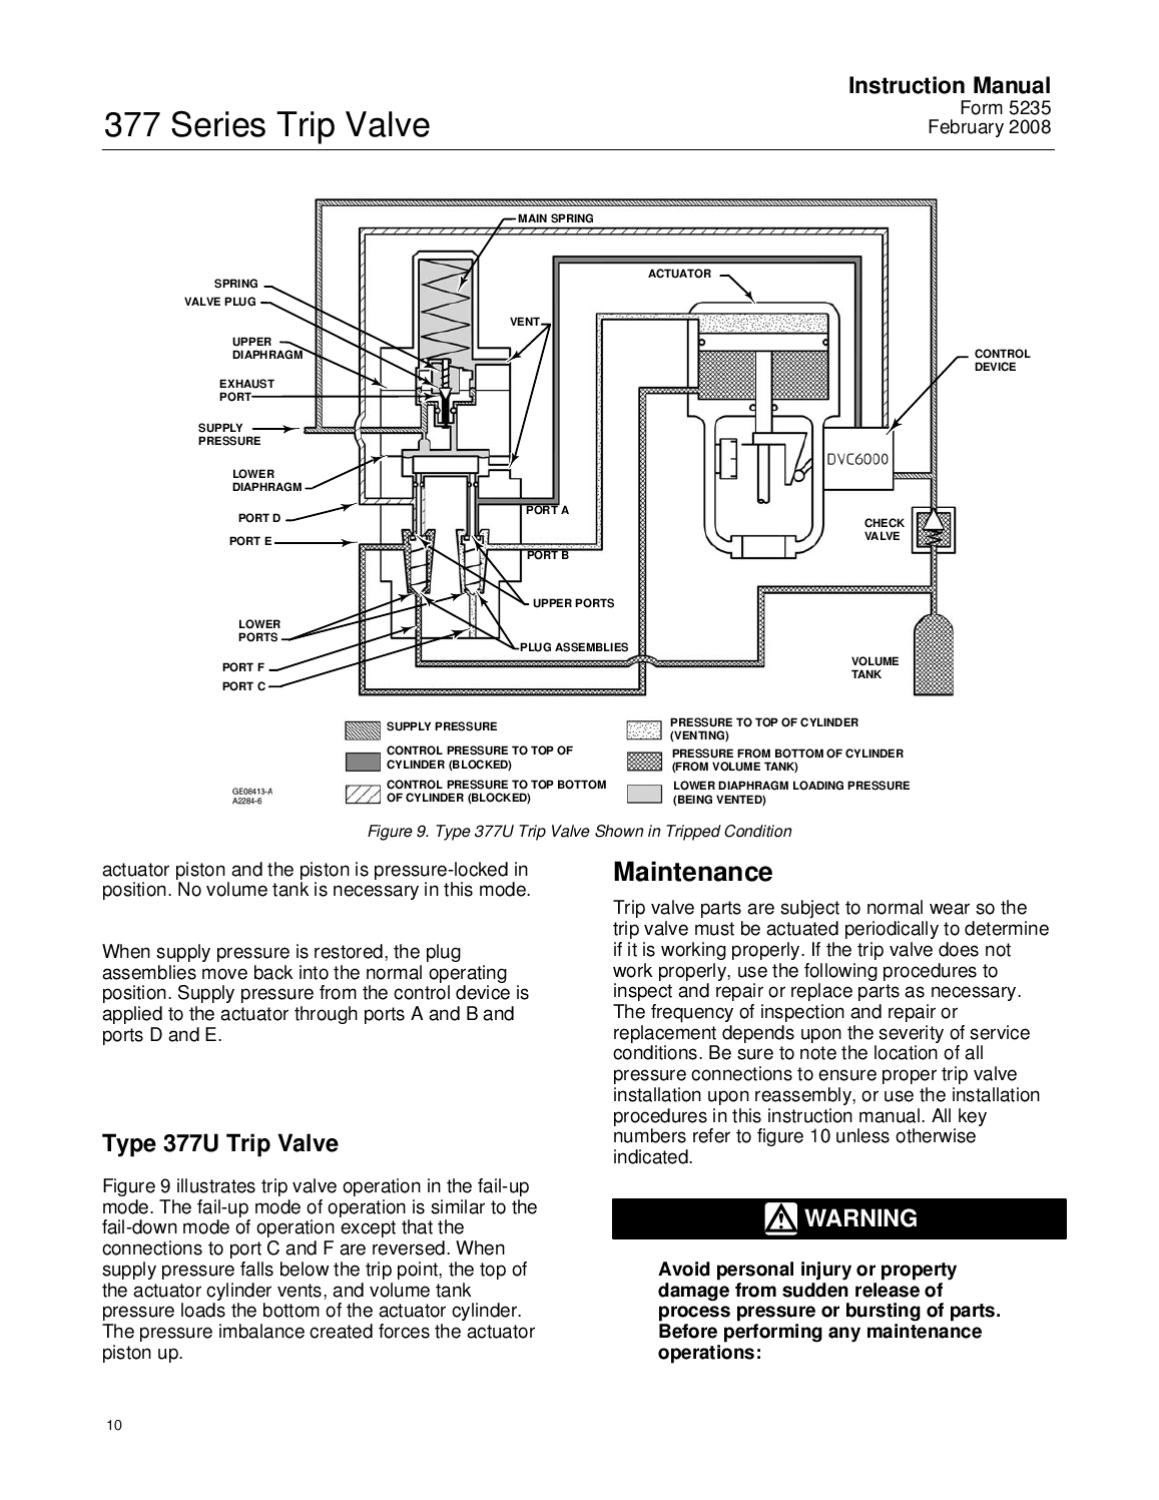 dvc6200 wiring diagram 2002 nissan frontier audio 377 trip valve instruction manual feb 2008 by rmc process